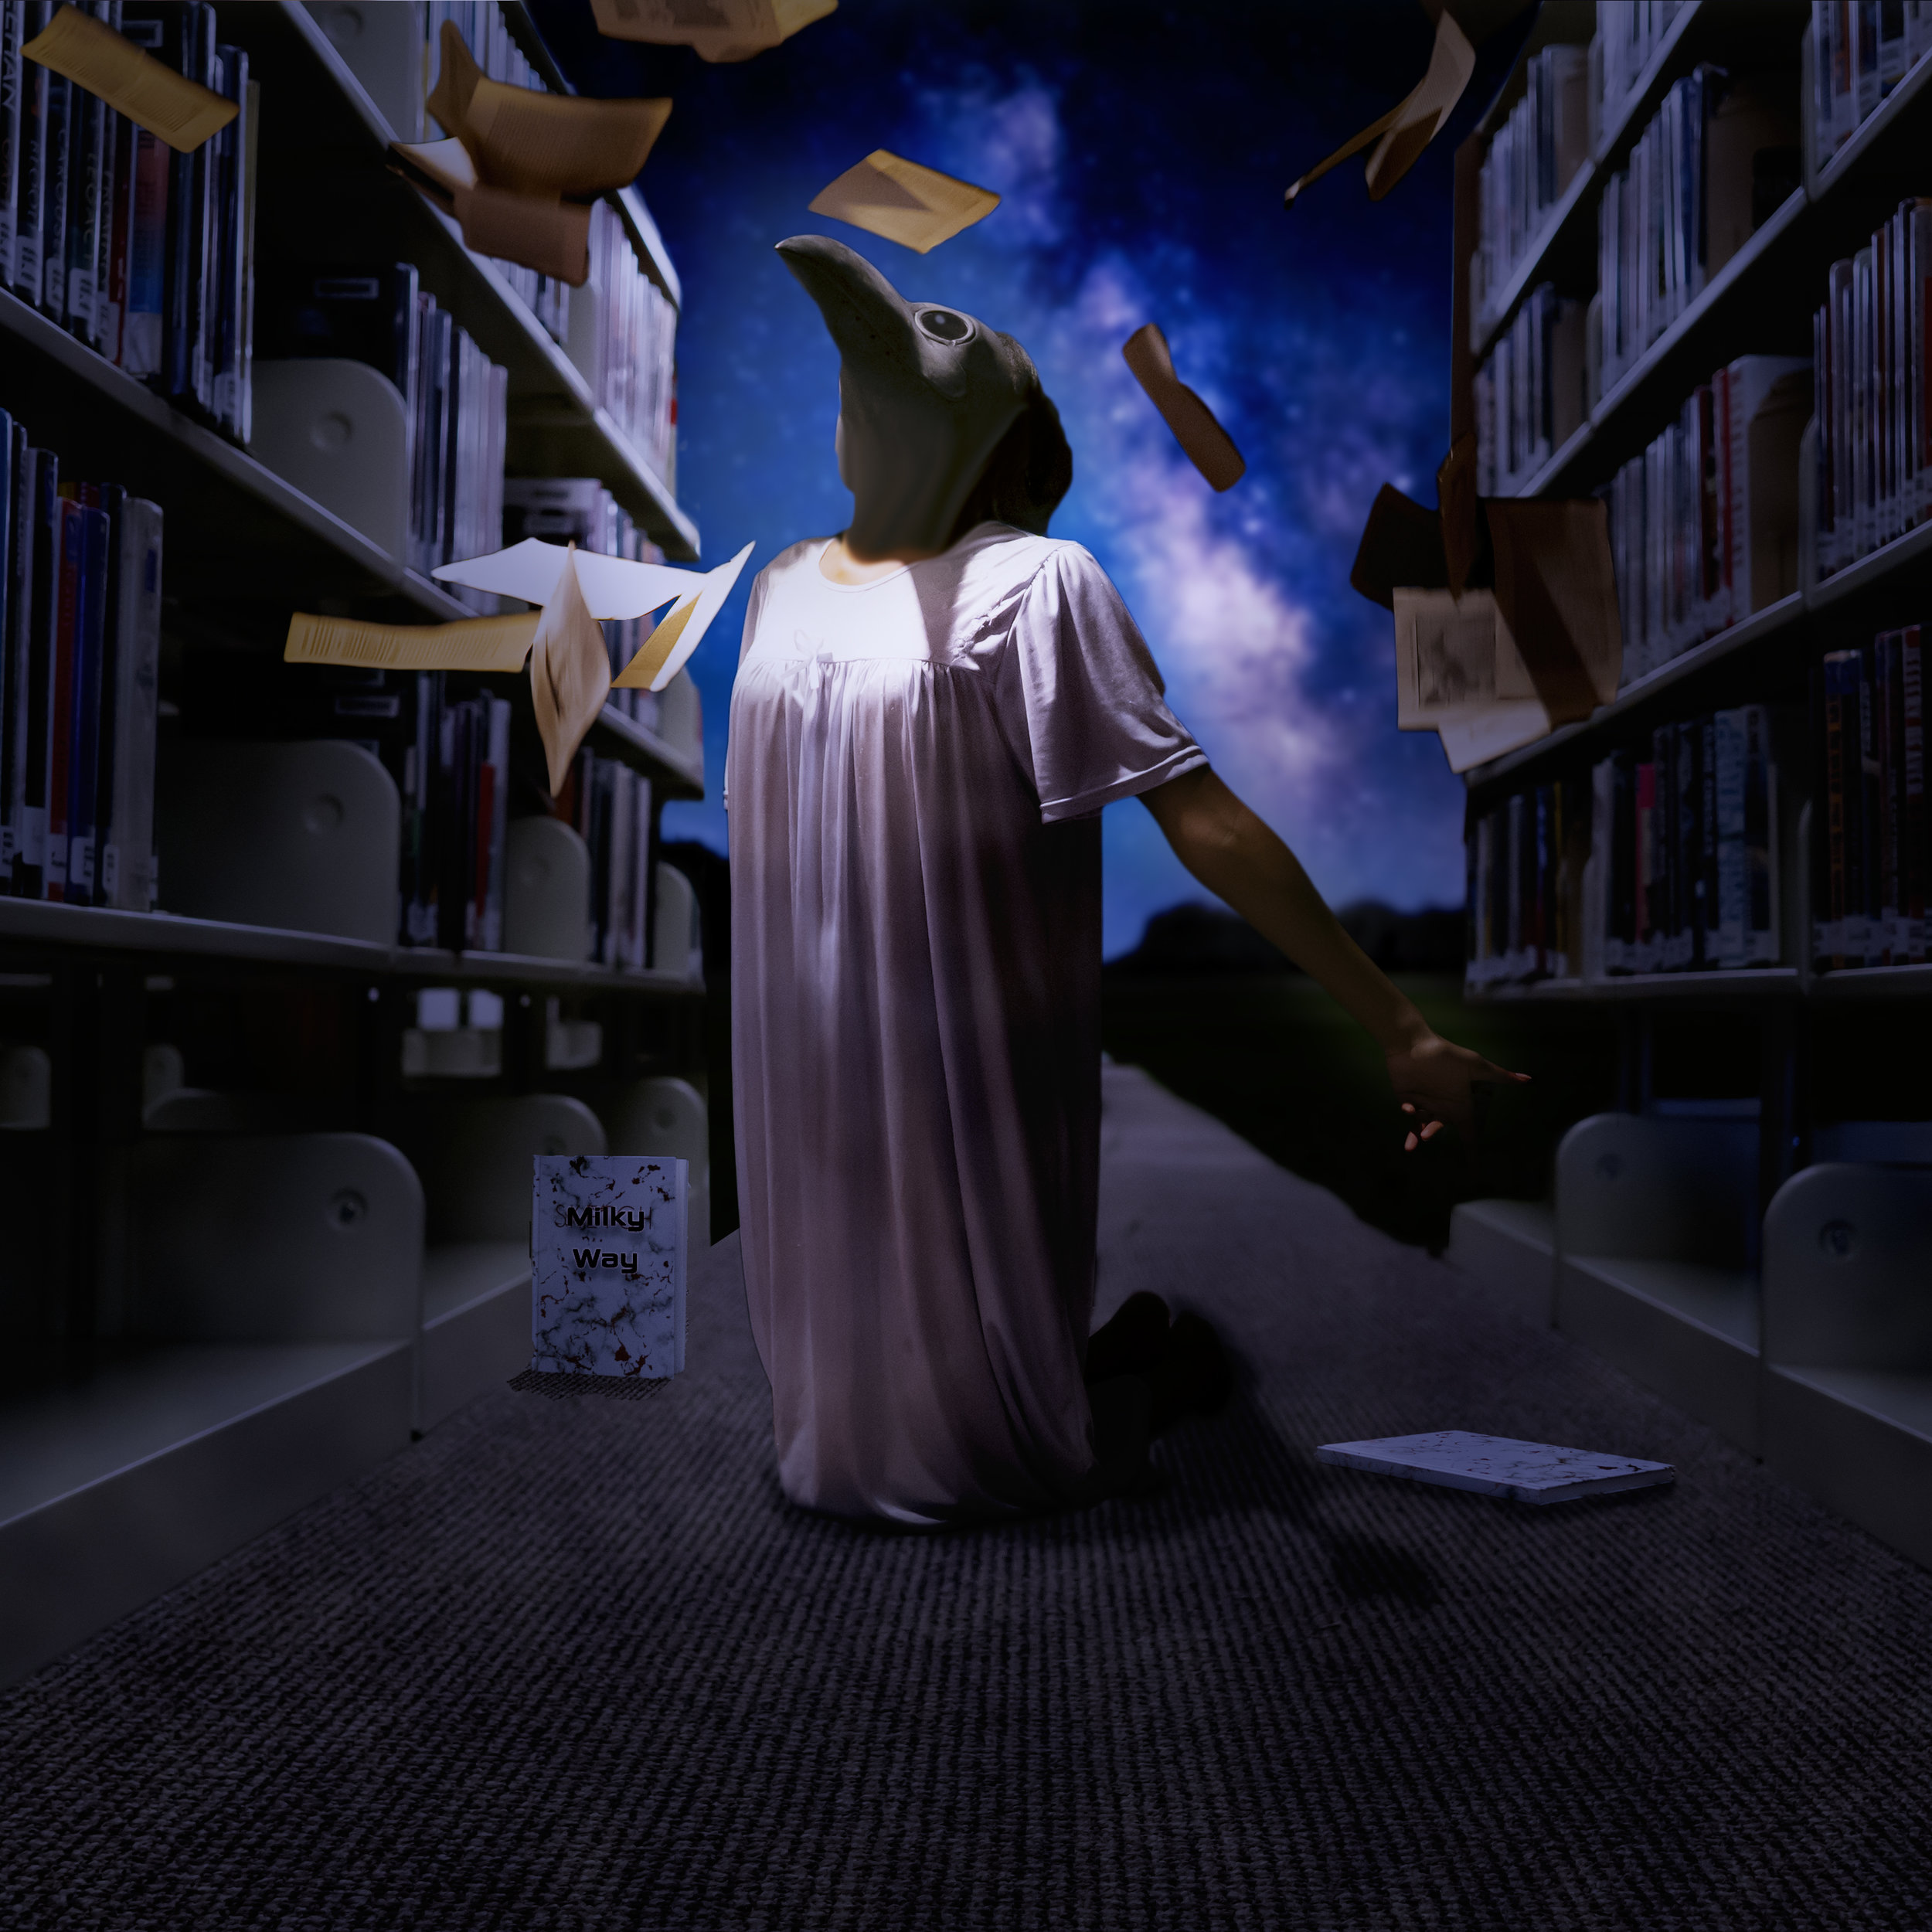 Nebula finds herself in a library, The library is all but destroyed and she is struggling to find something that will take here to a safe haven in the south….What will help?